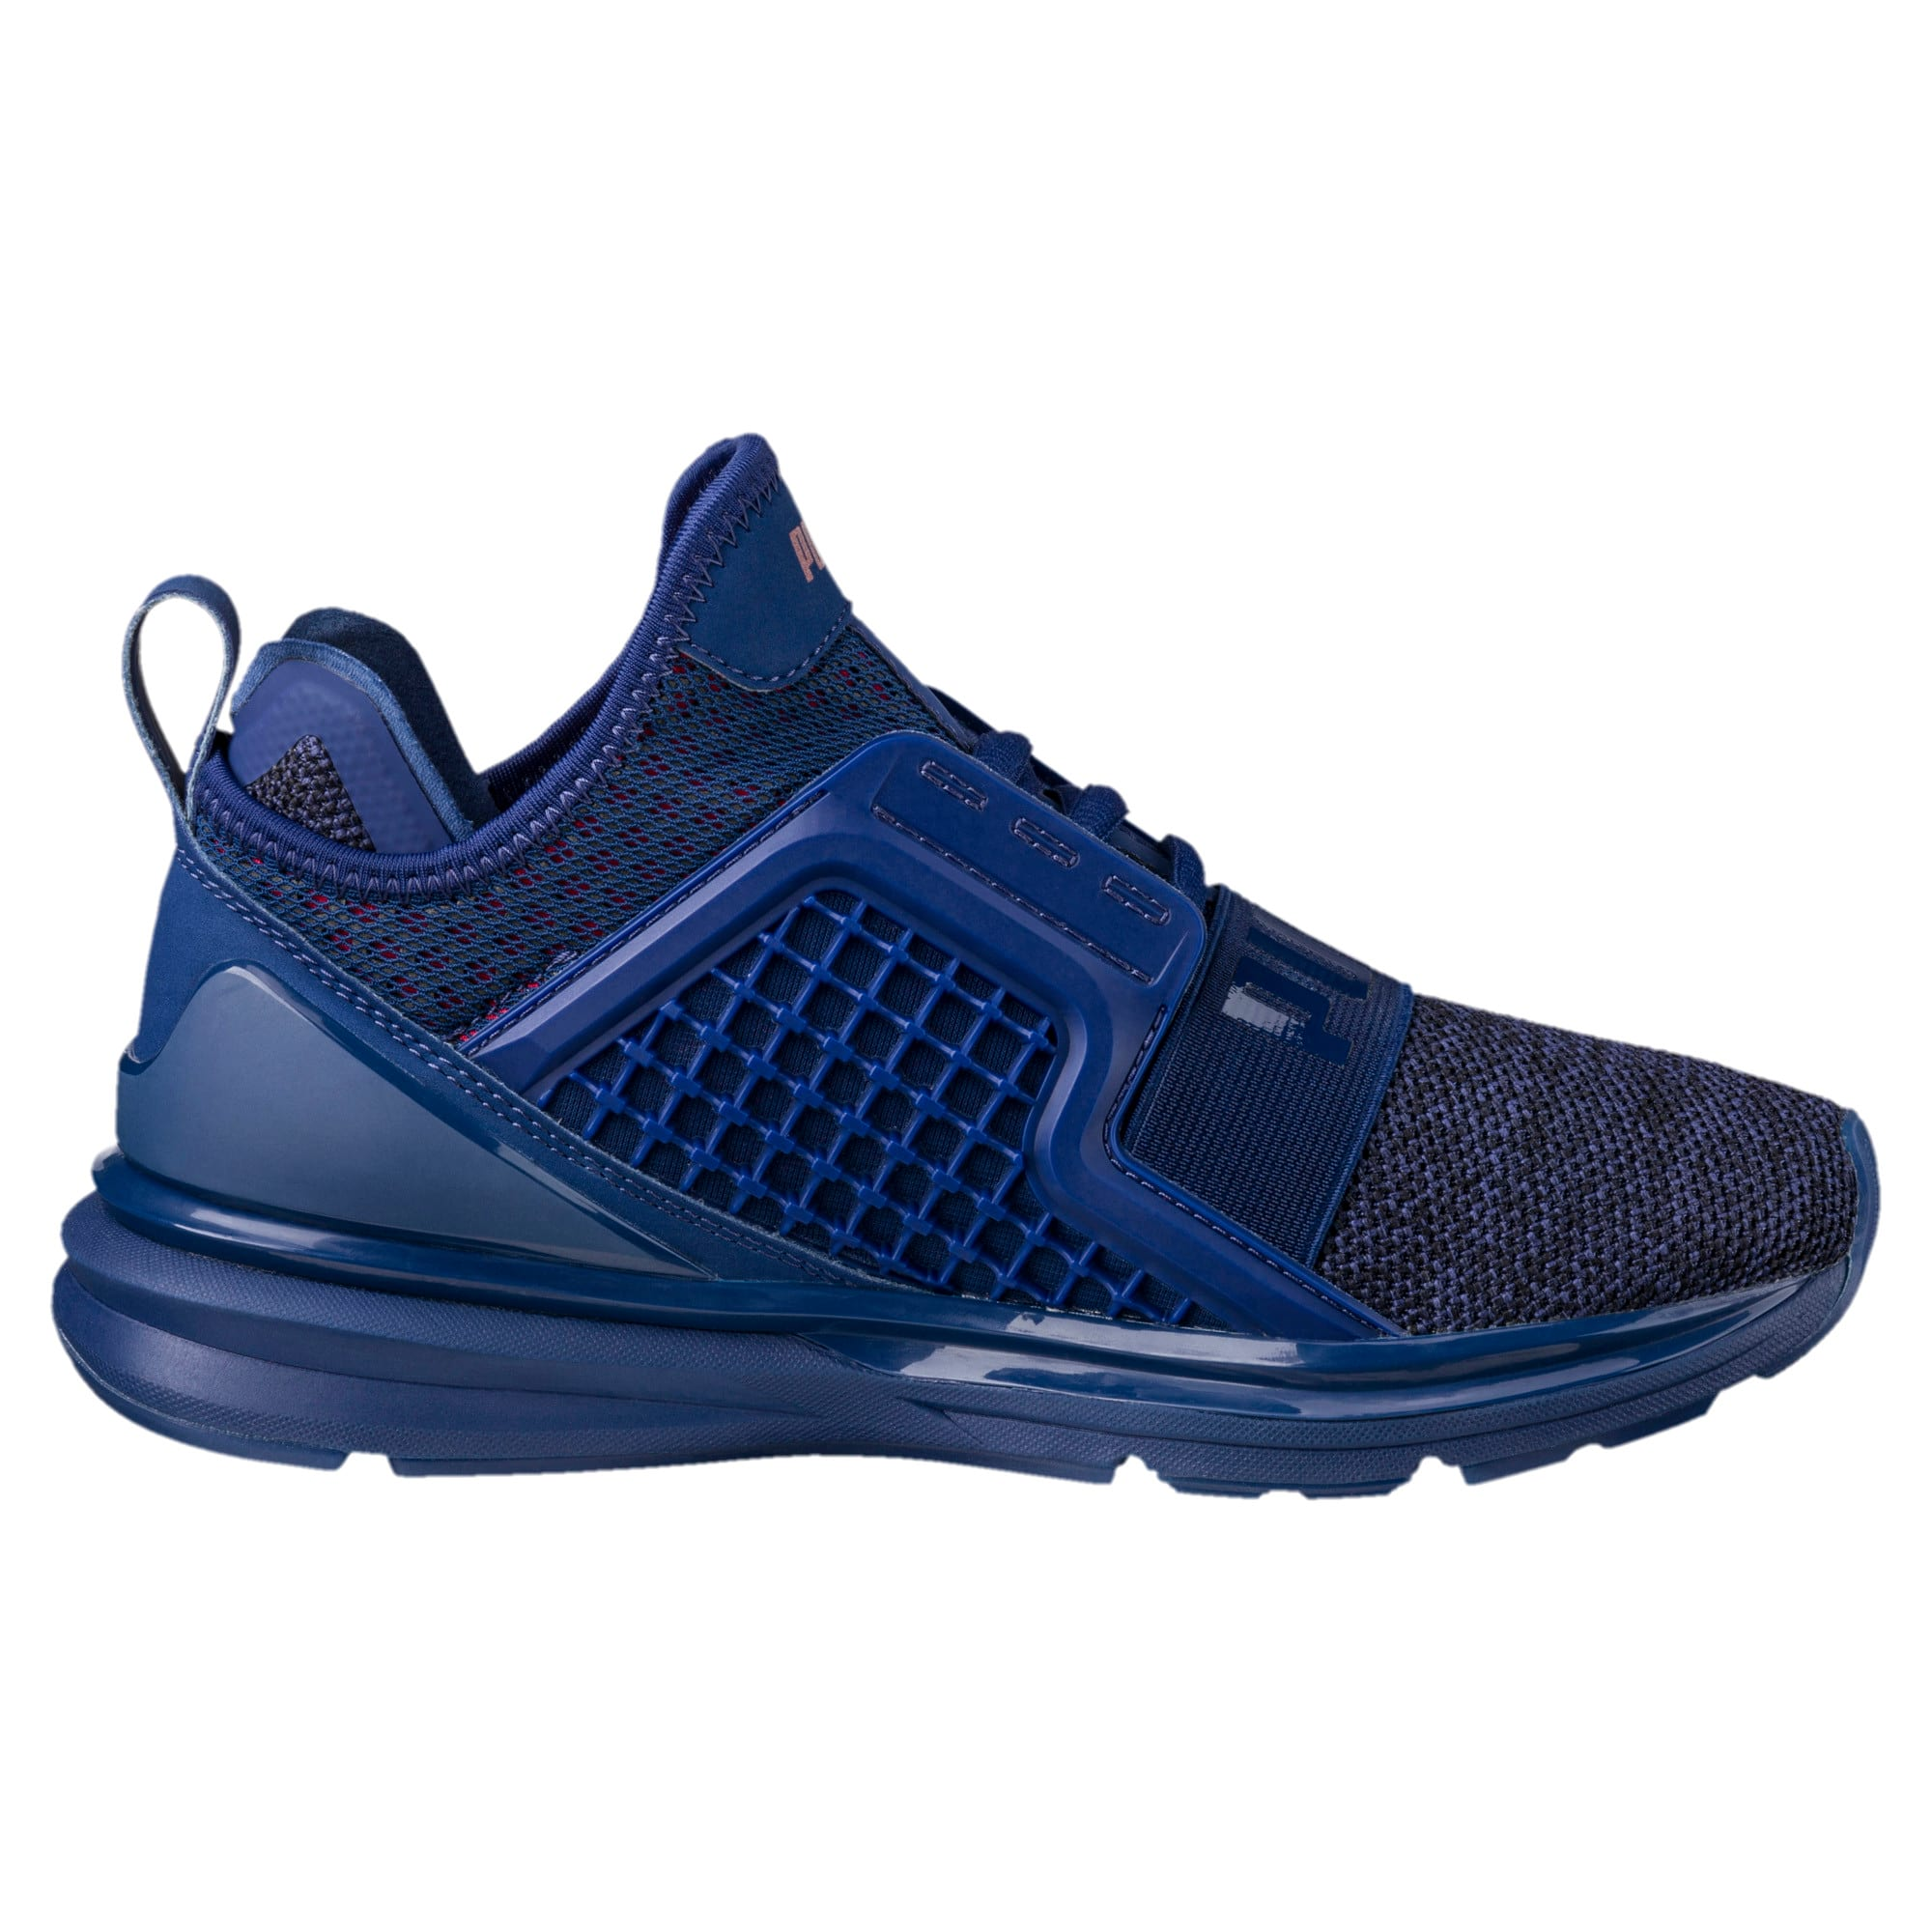 Thumbnail 4 of IGNITE Limitless Knit Kids' Trainers, Blue Depths-Toreador, medium-IND